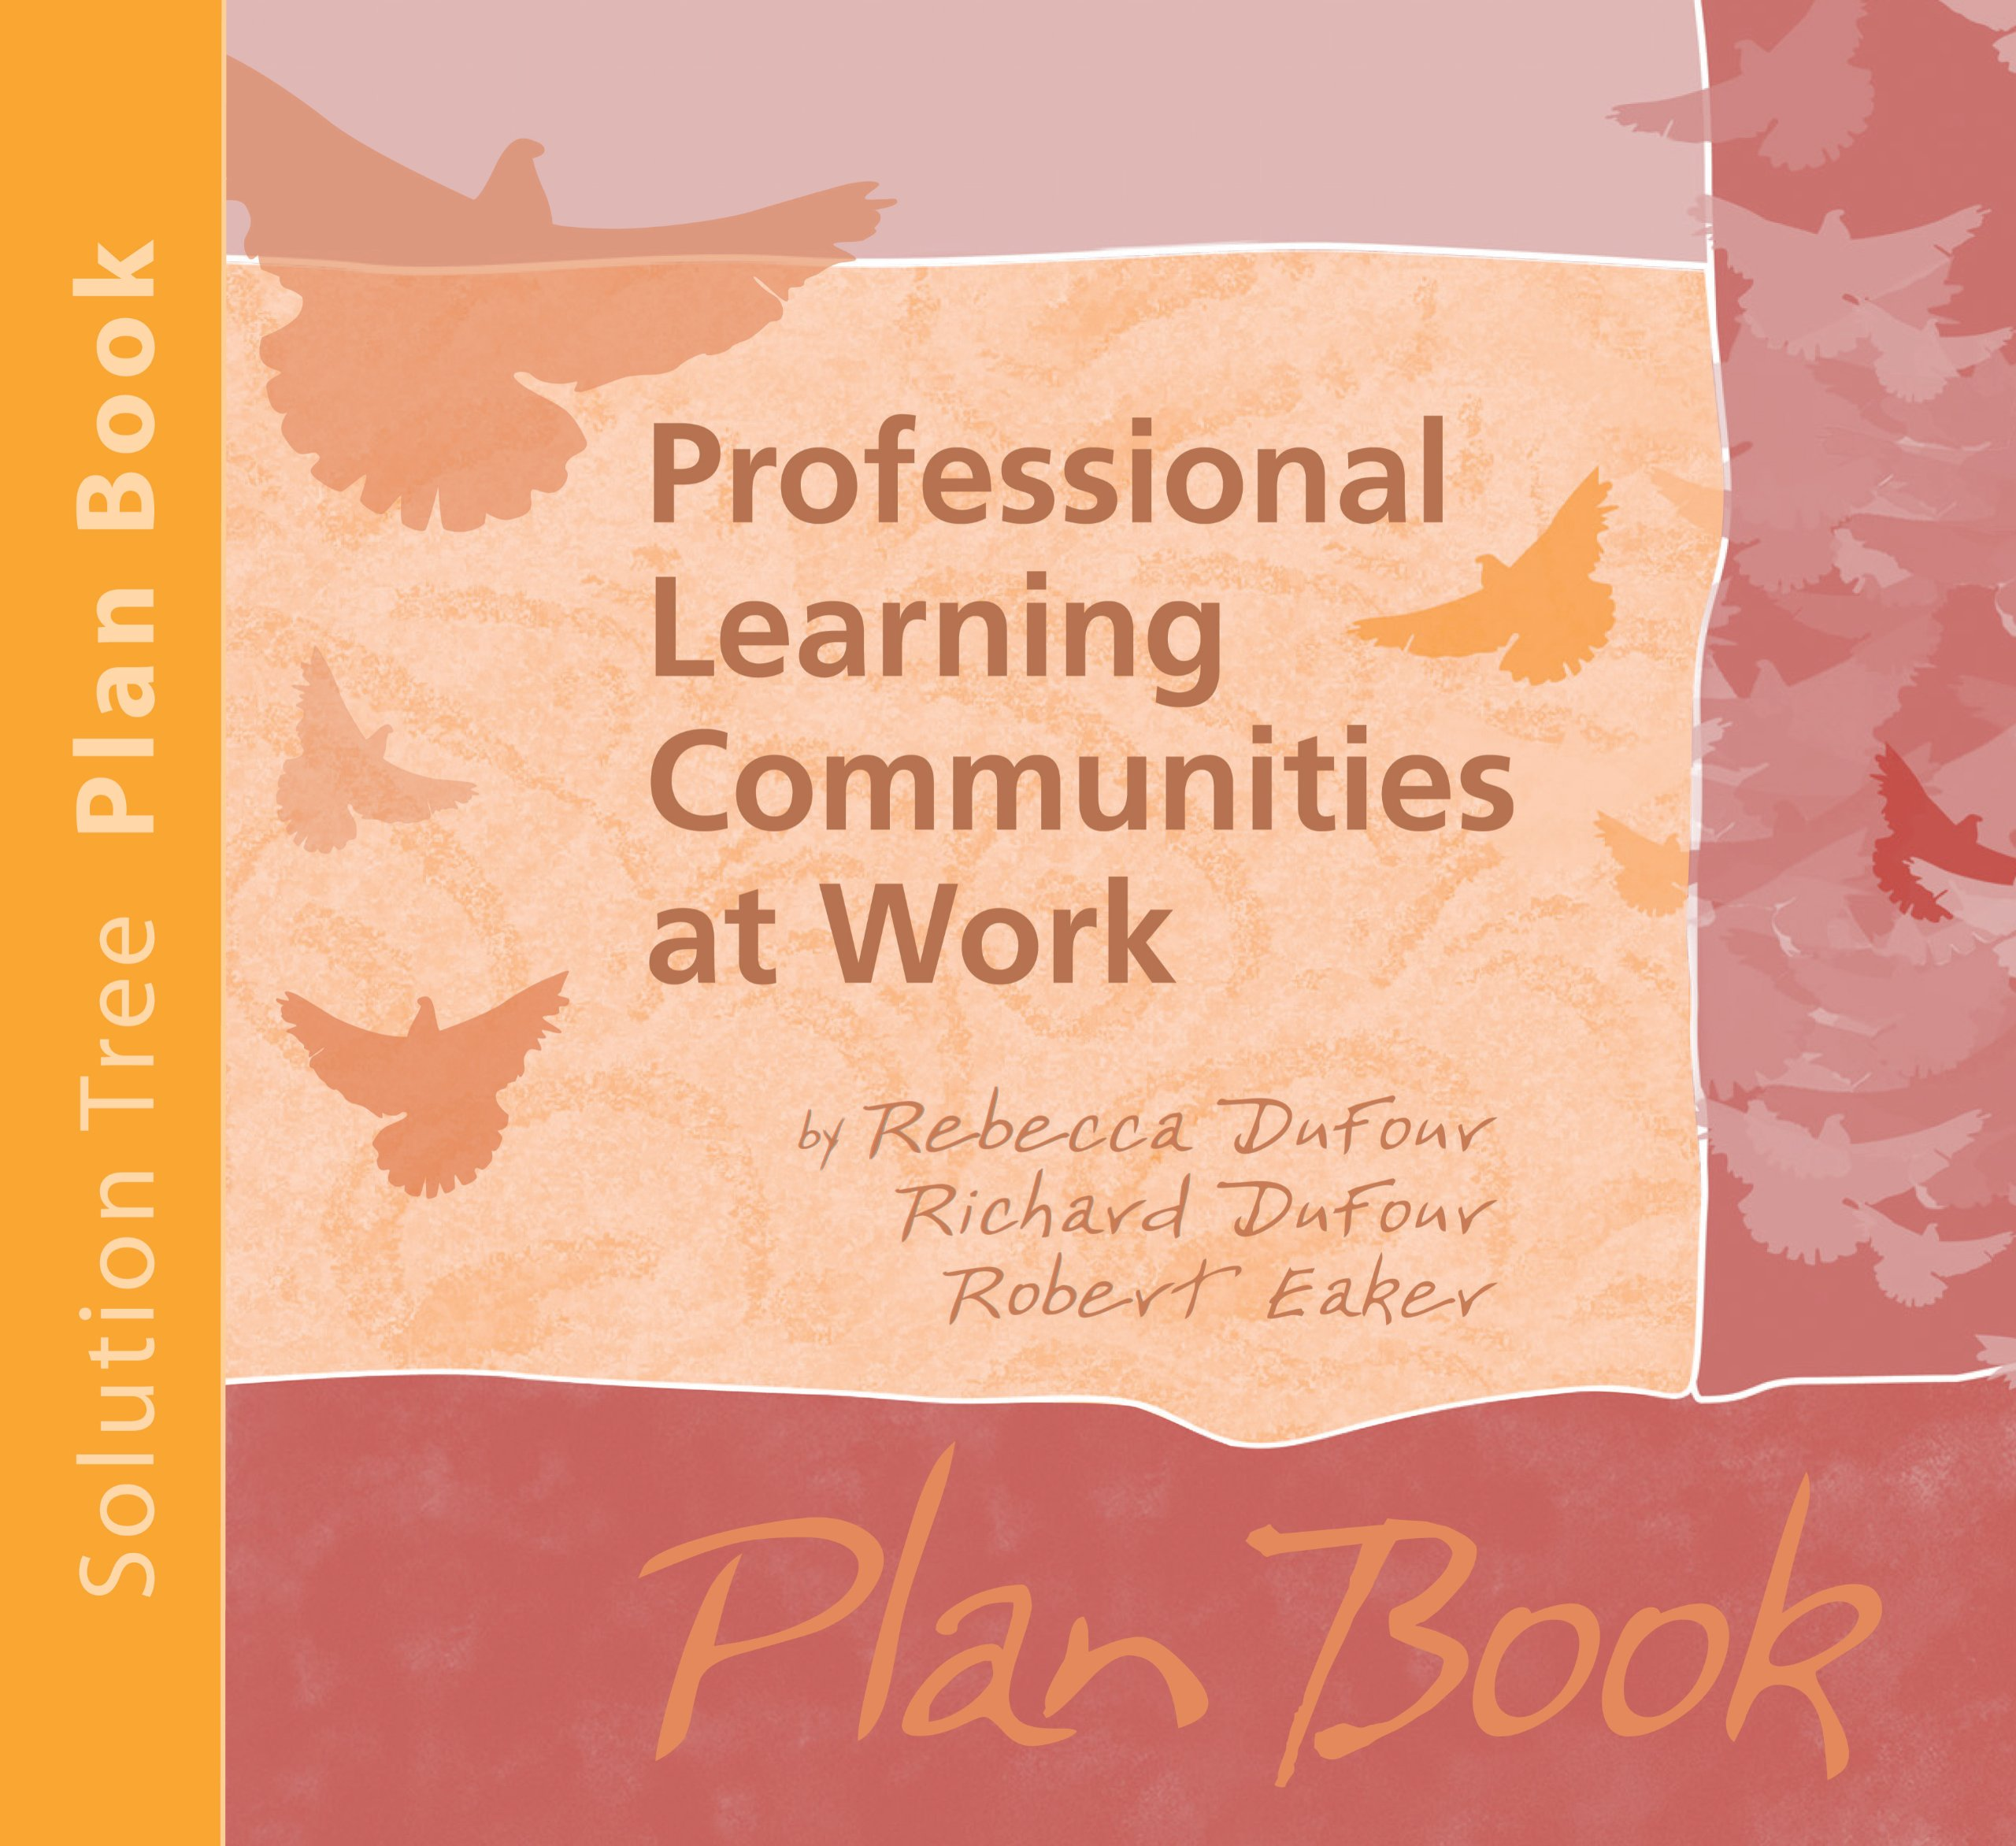 professional learning communities at work plan book rebecca professional learning communities at work plan book rebecca dufour richard dufour robert eaker 9781932127959 amazon com books